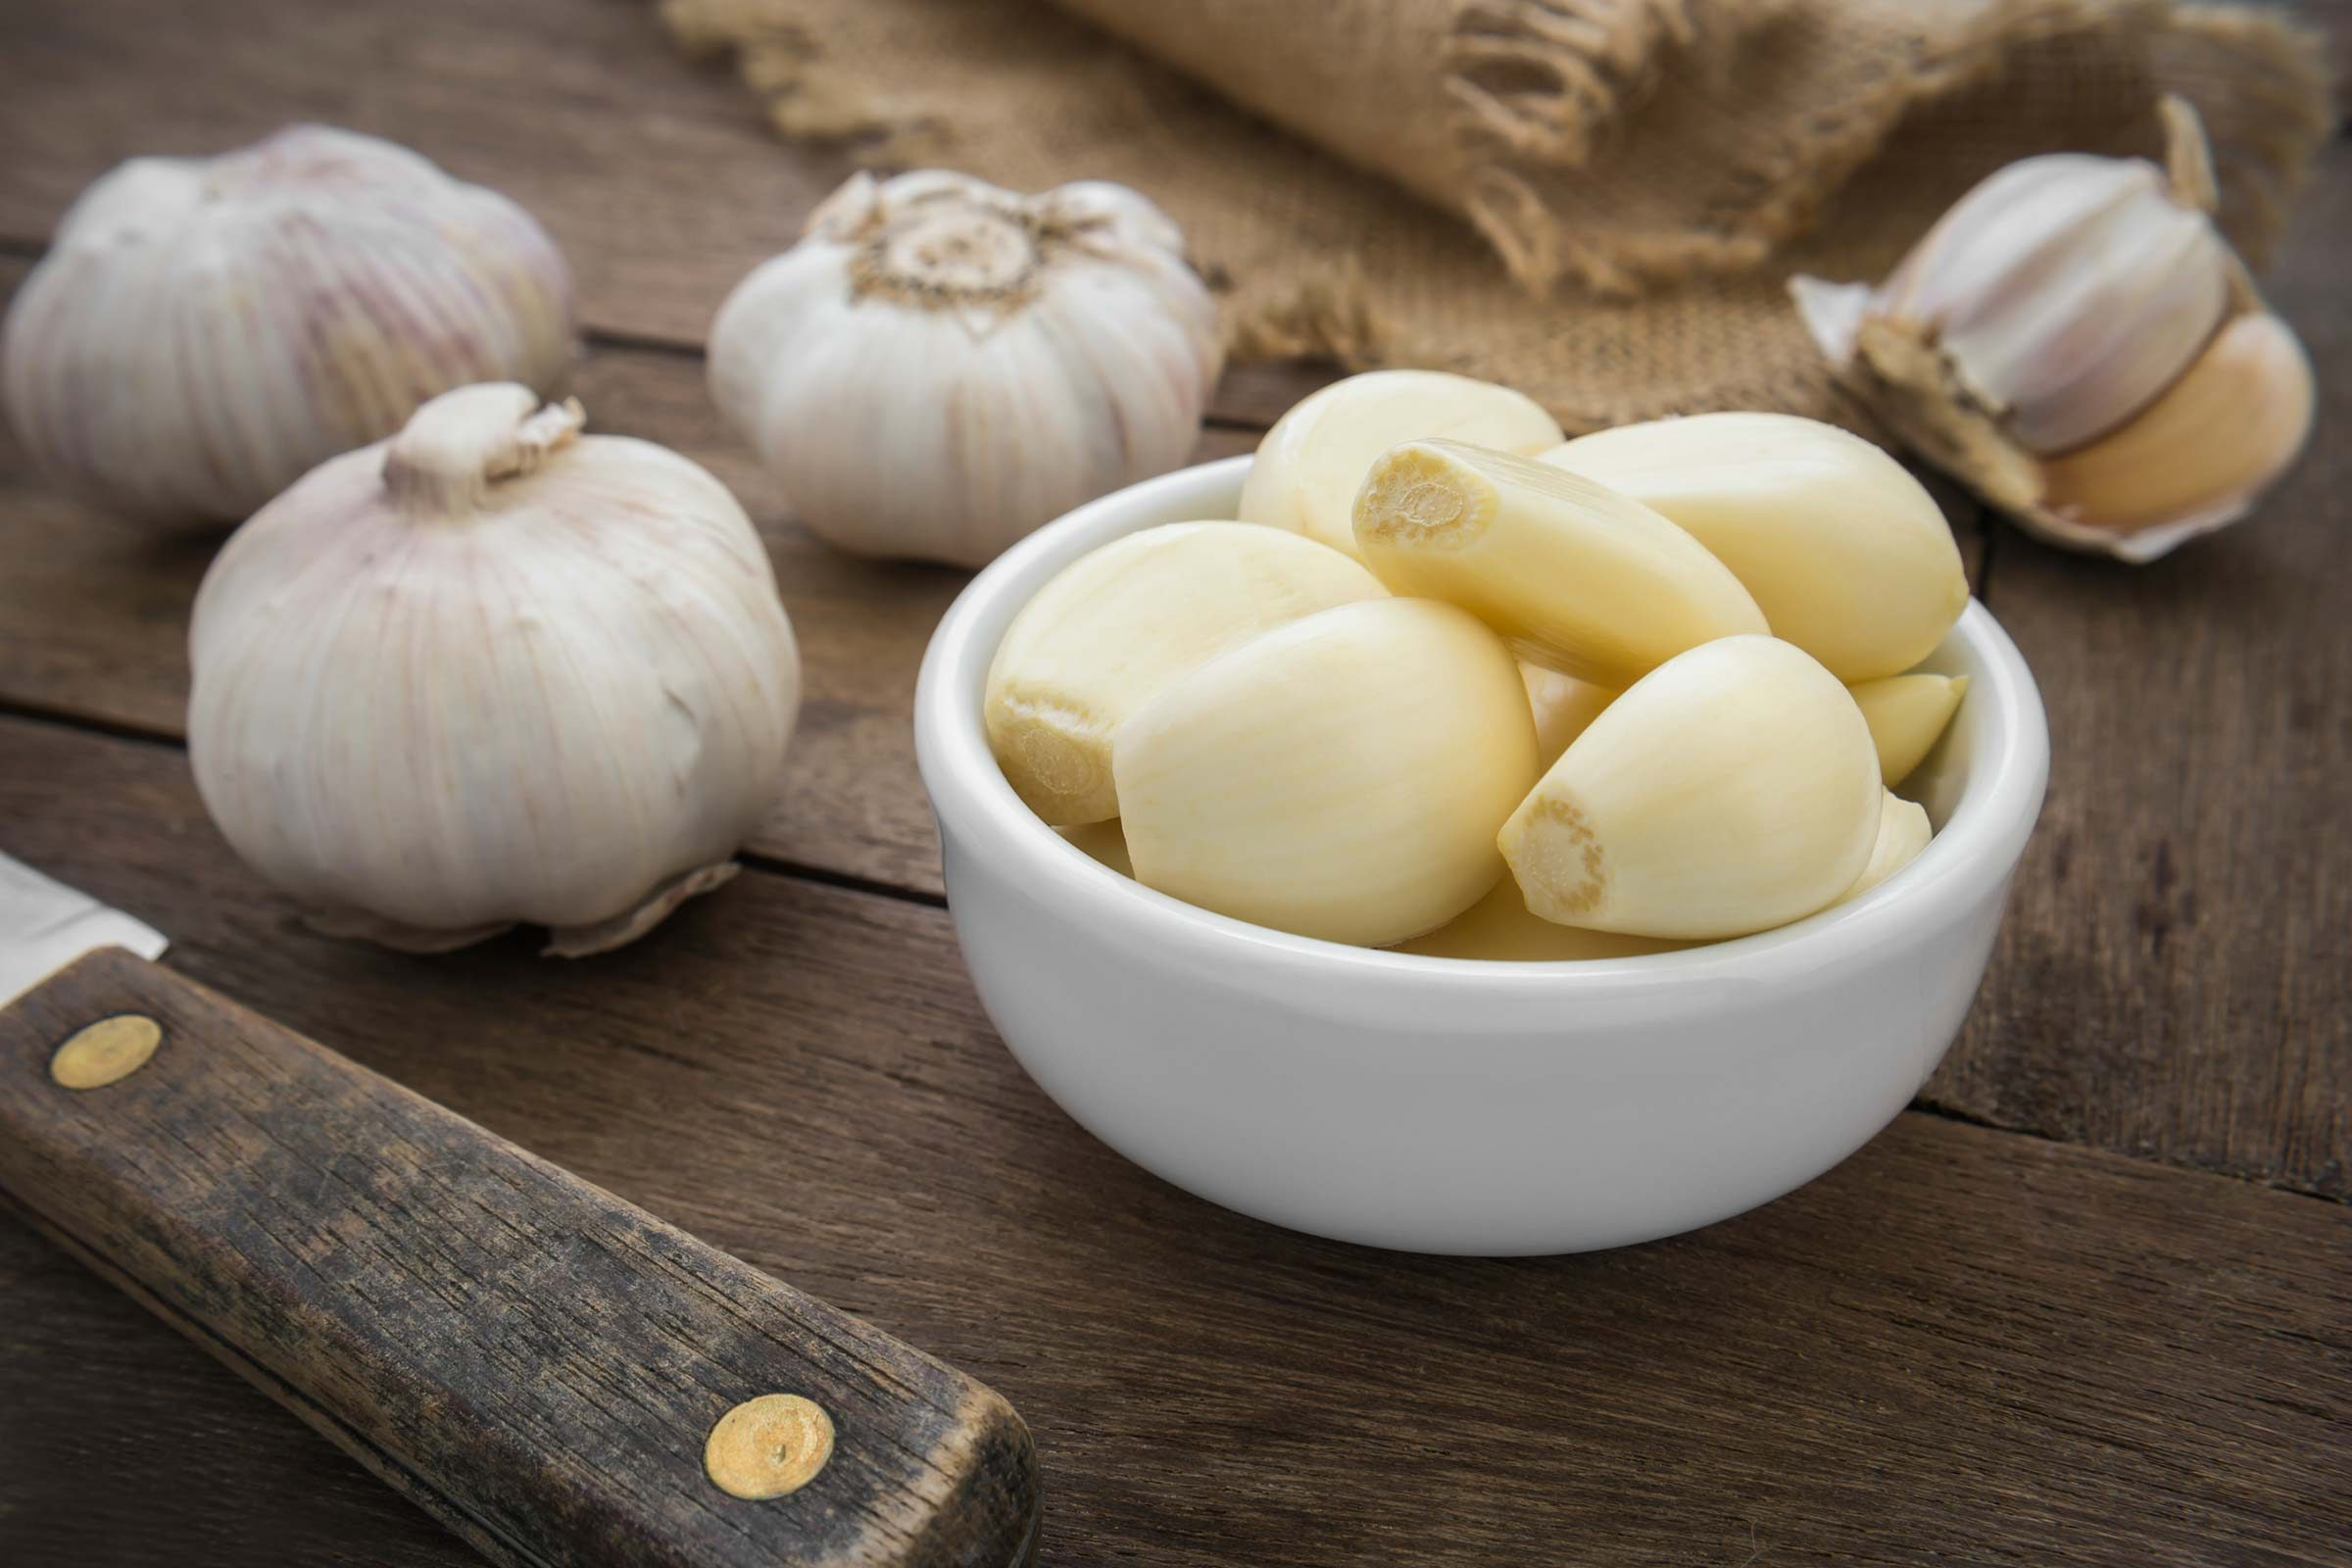 garlic cloves and peeled garlic